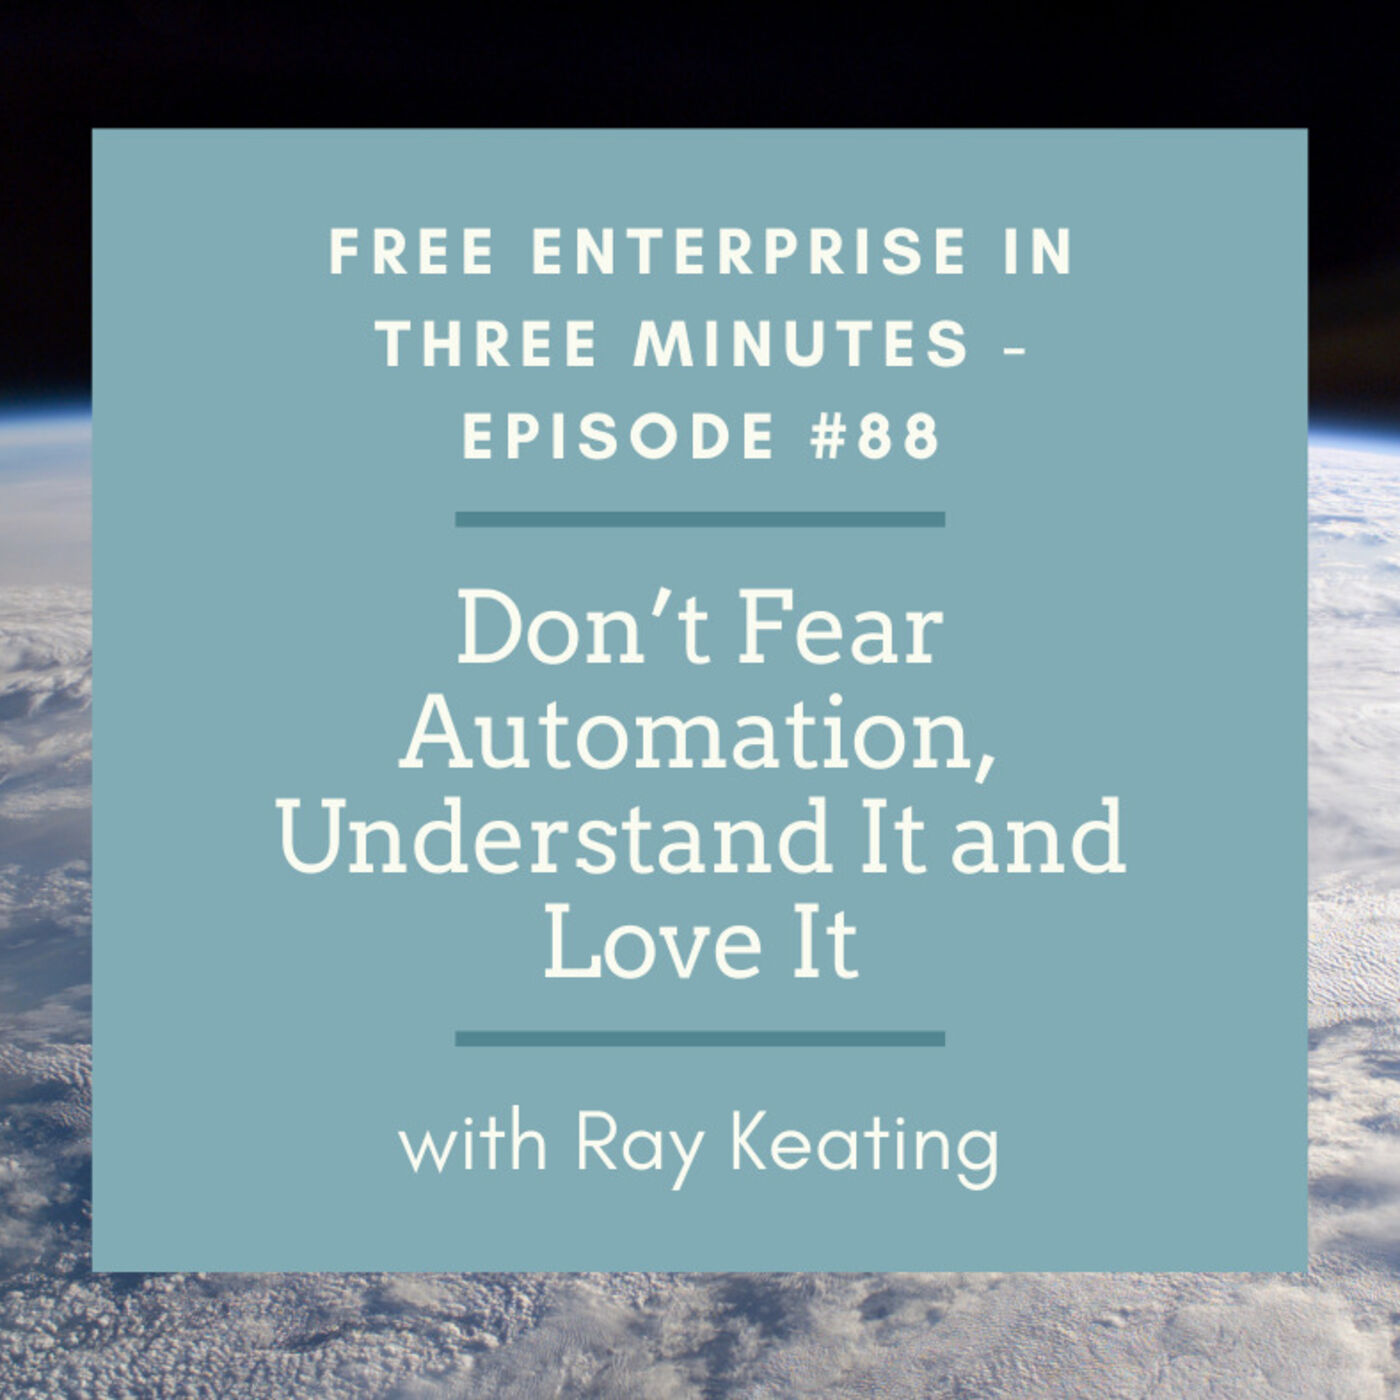 Episode #88: Don't Fear Automation, Understand It and Love It